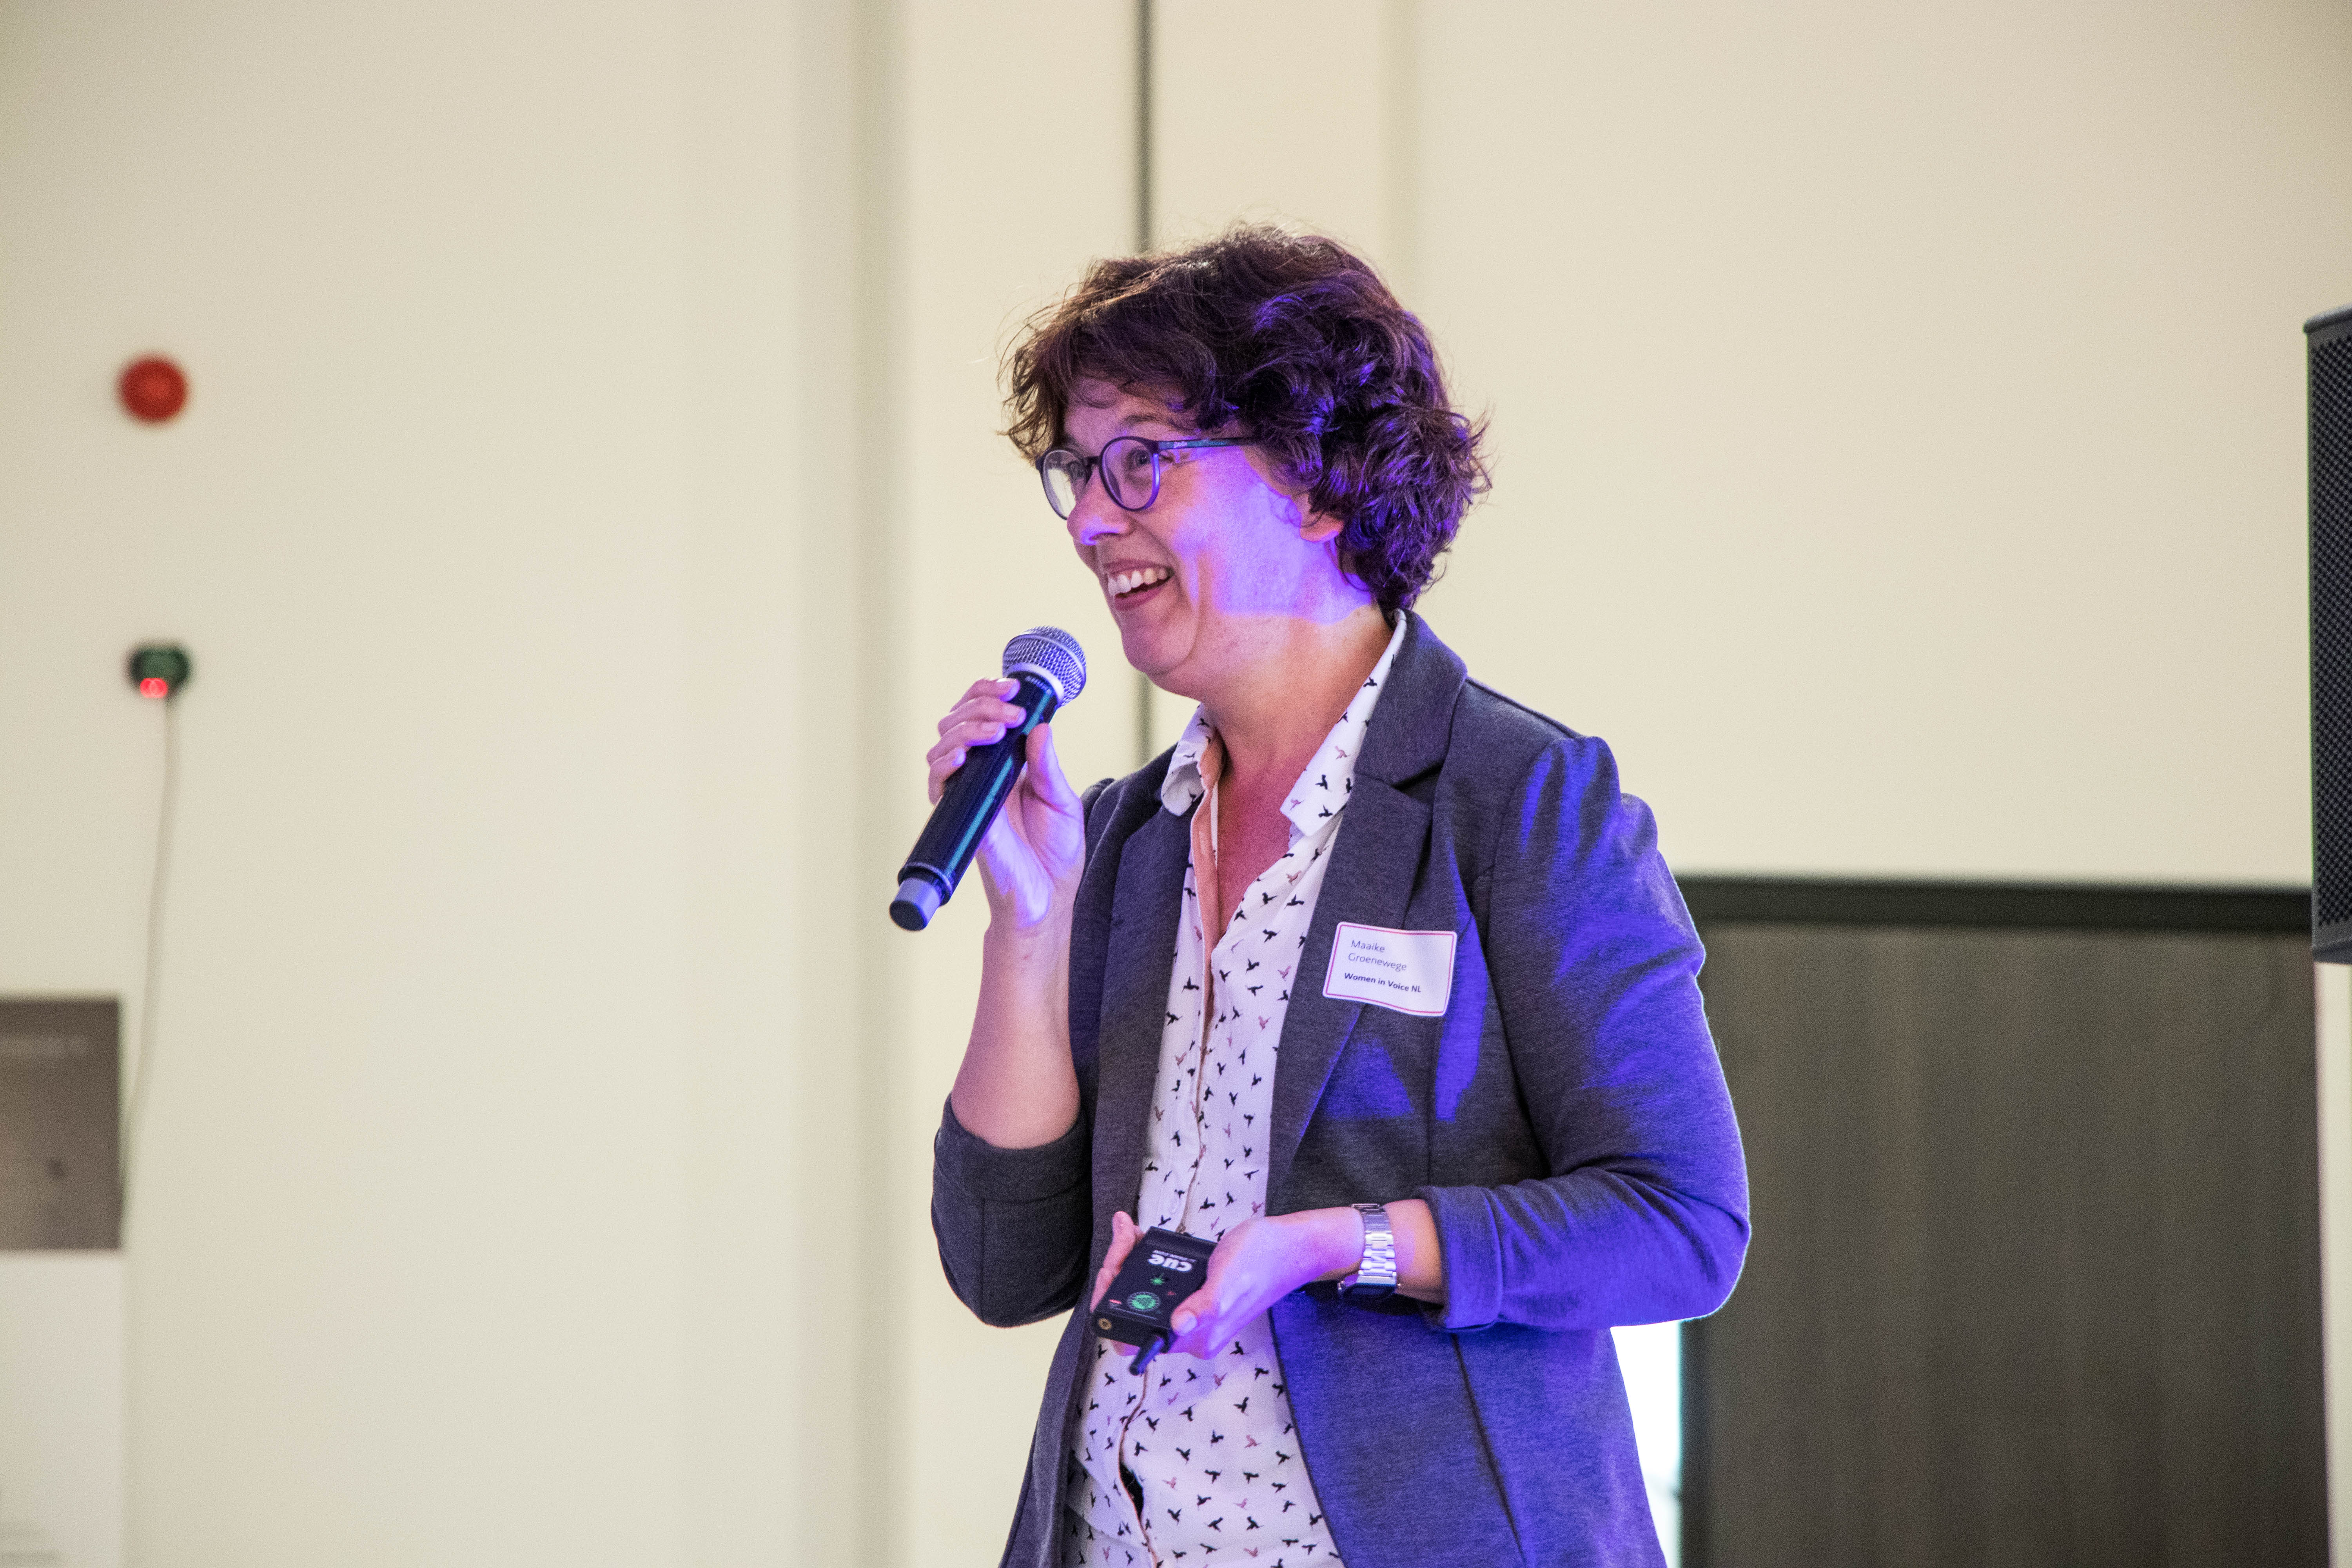 Maaike Groenewege, Information Analyst at NS and the initiator and ambassador of Women in Voice Nederland